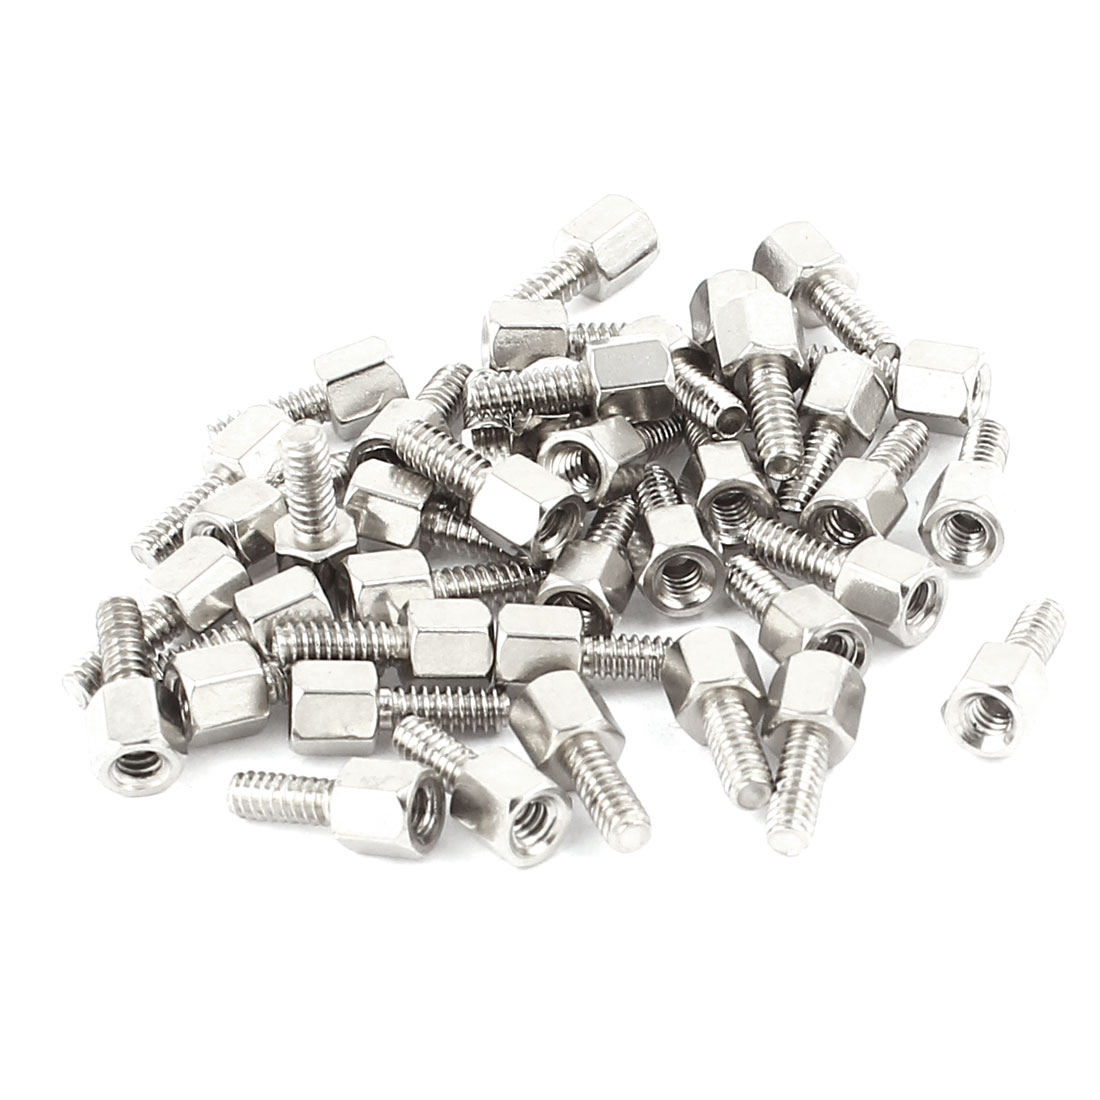 40Pcs M2.7x7mm Male to Female Thread Hex Standoff Hexagonal Spacer